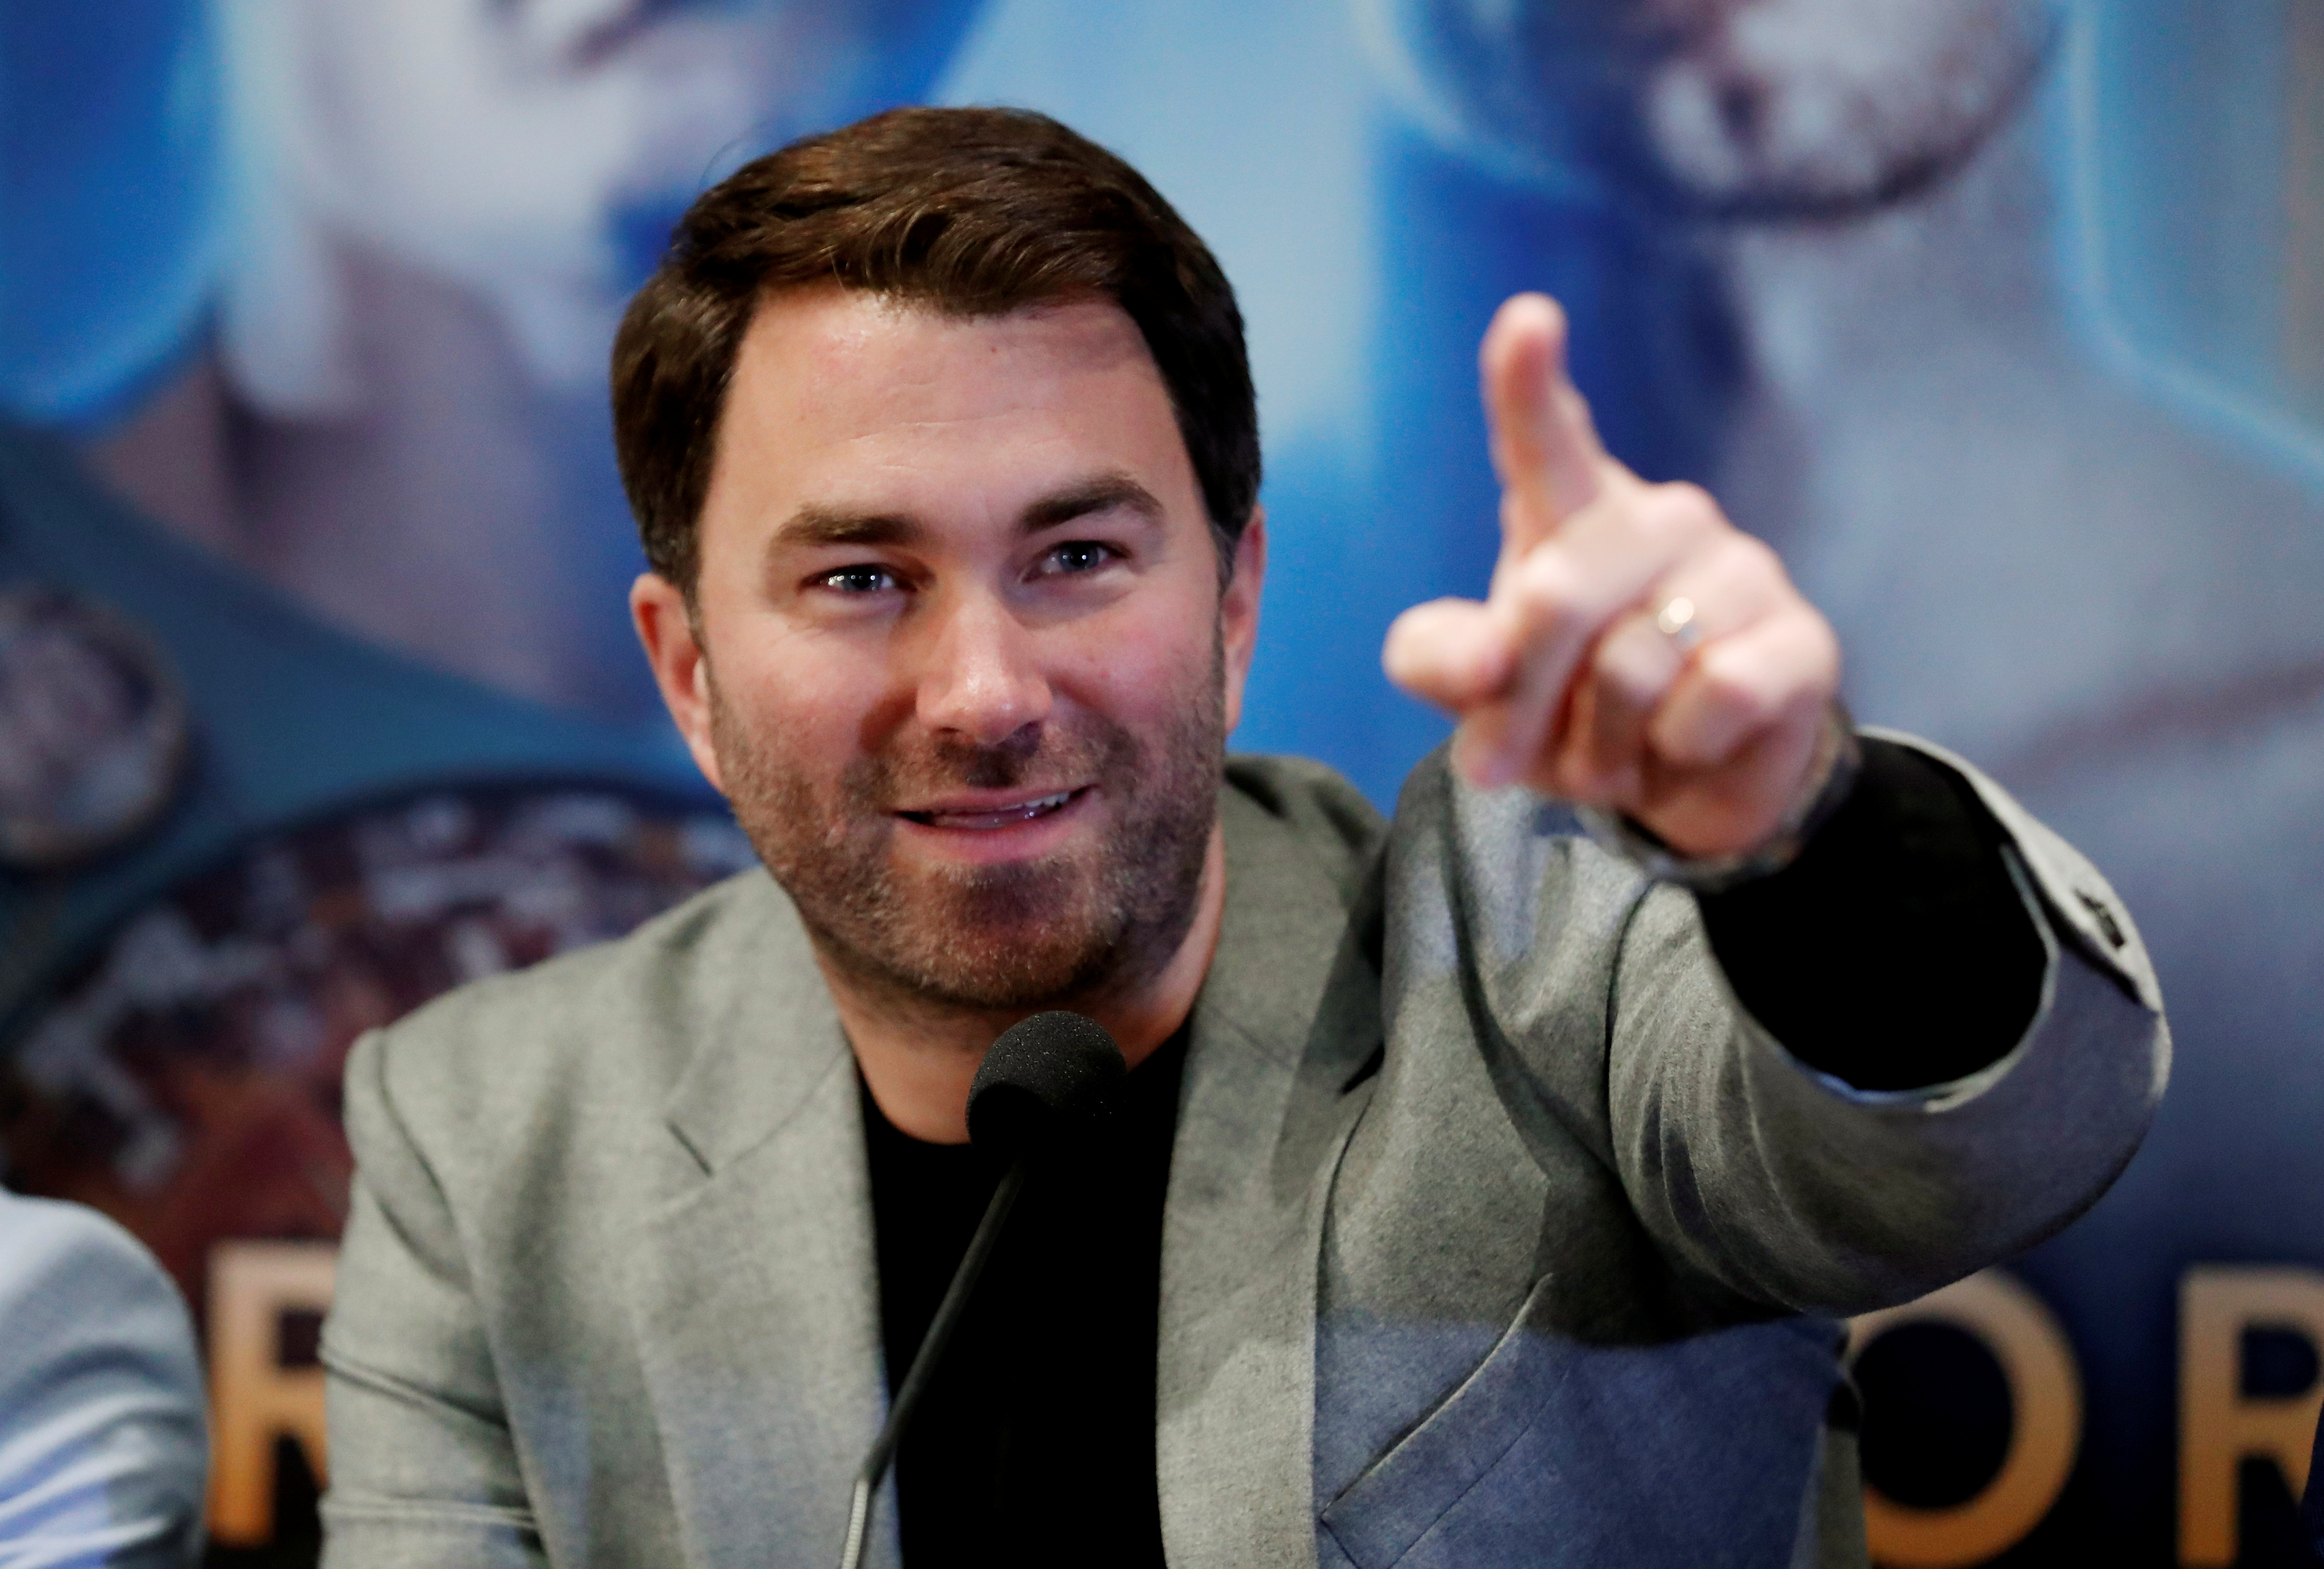 Even promoter Eddie Hearn was shocked by the state of Fitzgerald's face after the bout